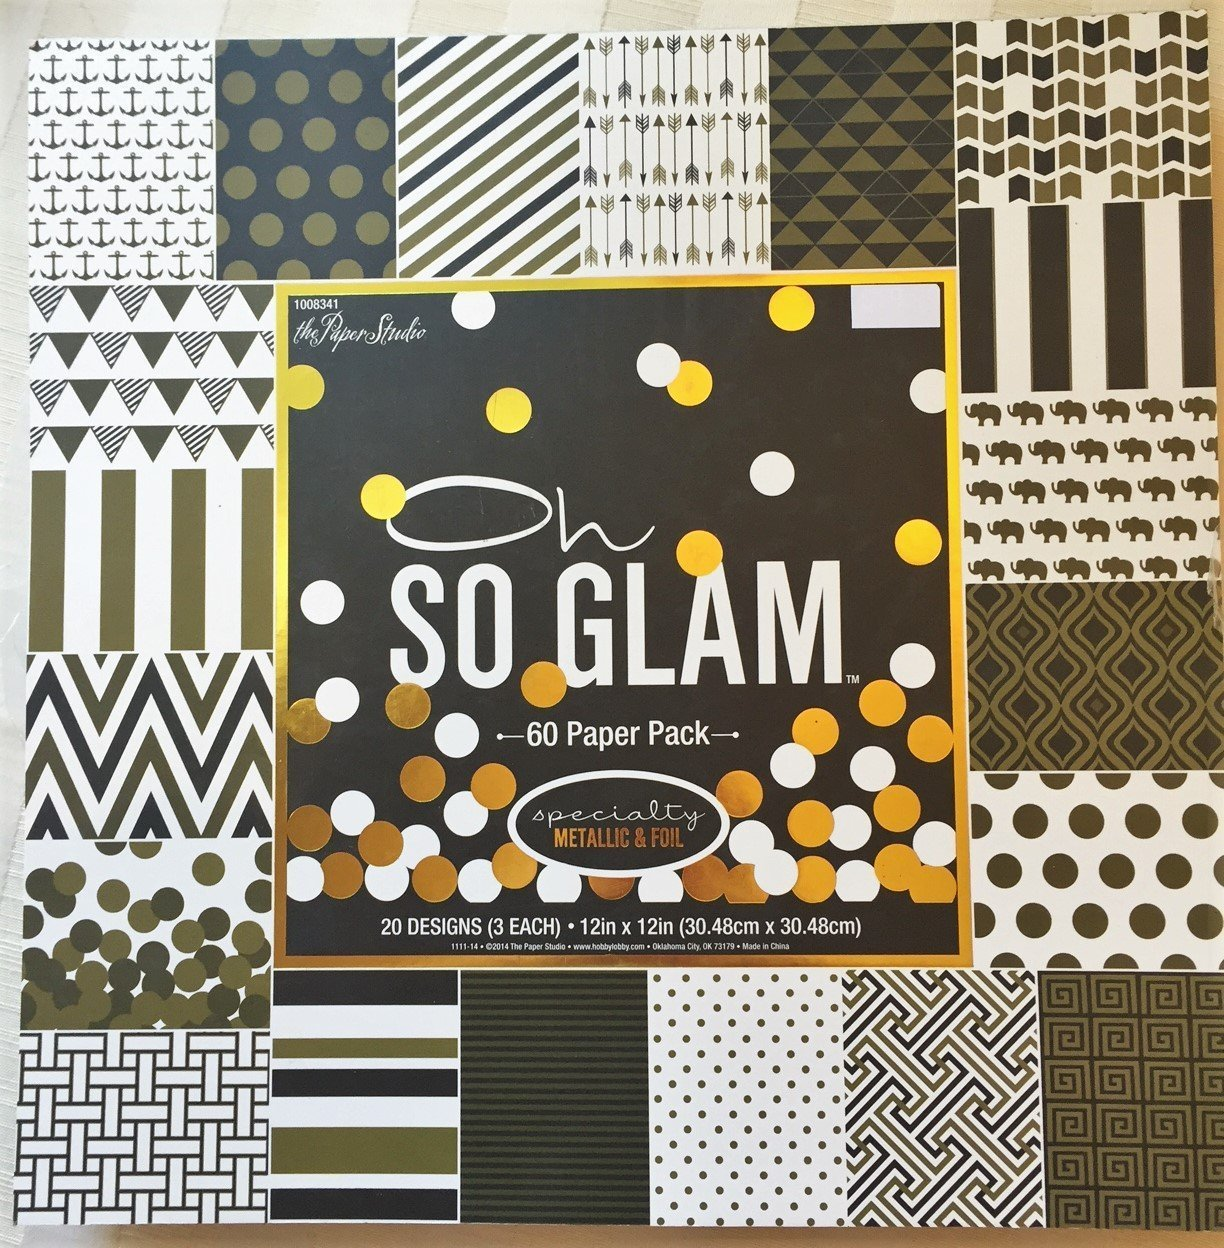 Cream colored cardstock paper studio - Oh So Glam 12x12 Gold Foiled Embossed Scrapbooking Paper Cardstock Arrows Greek Key Elephants Anchors 60 Sheets